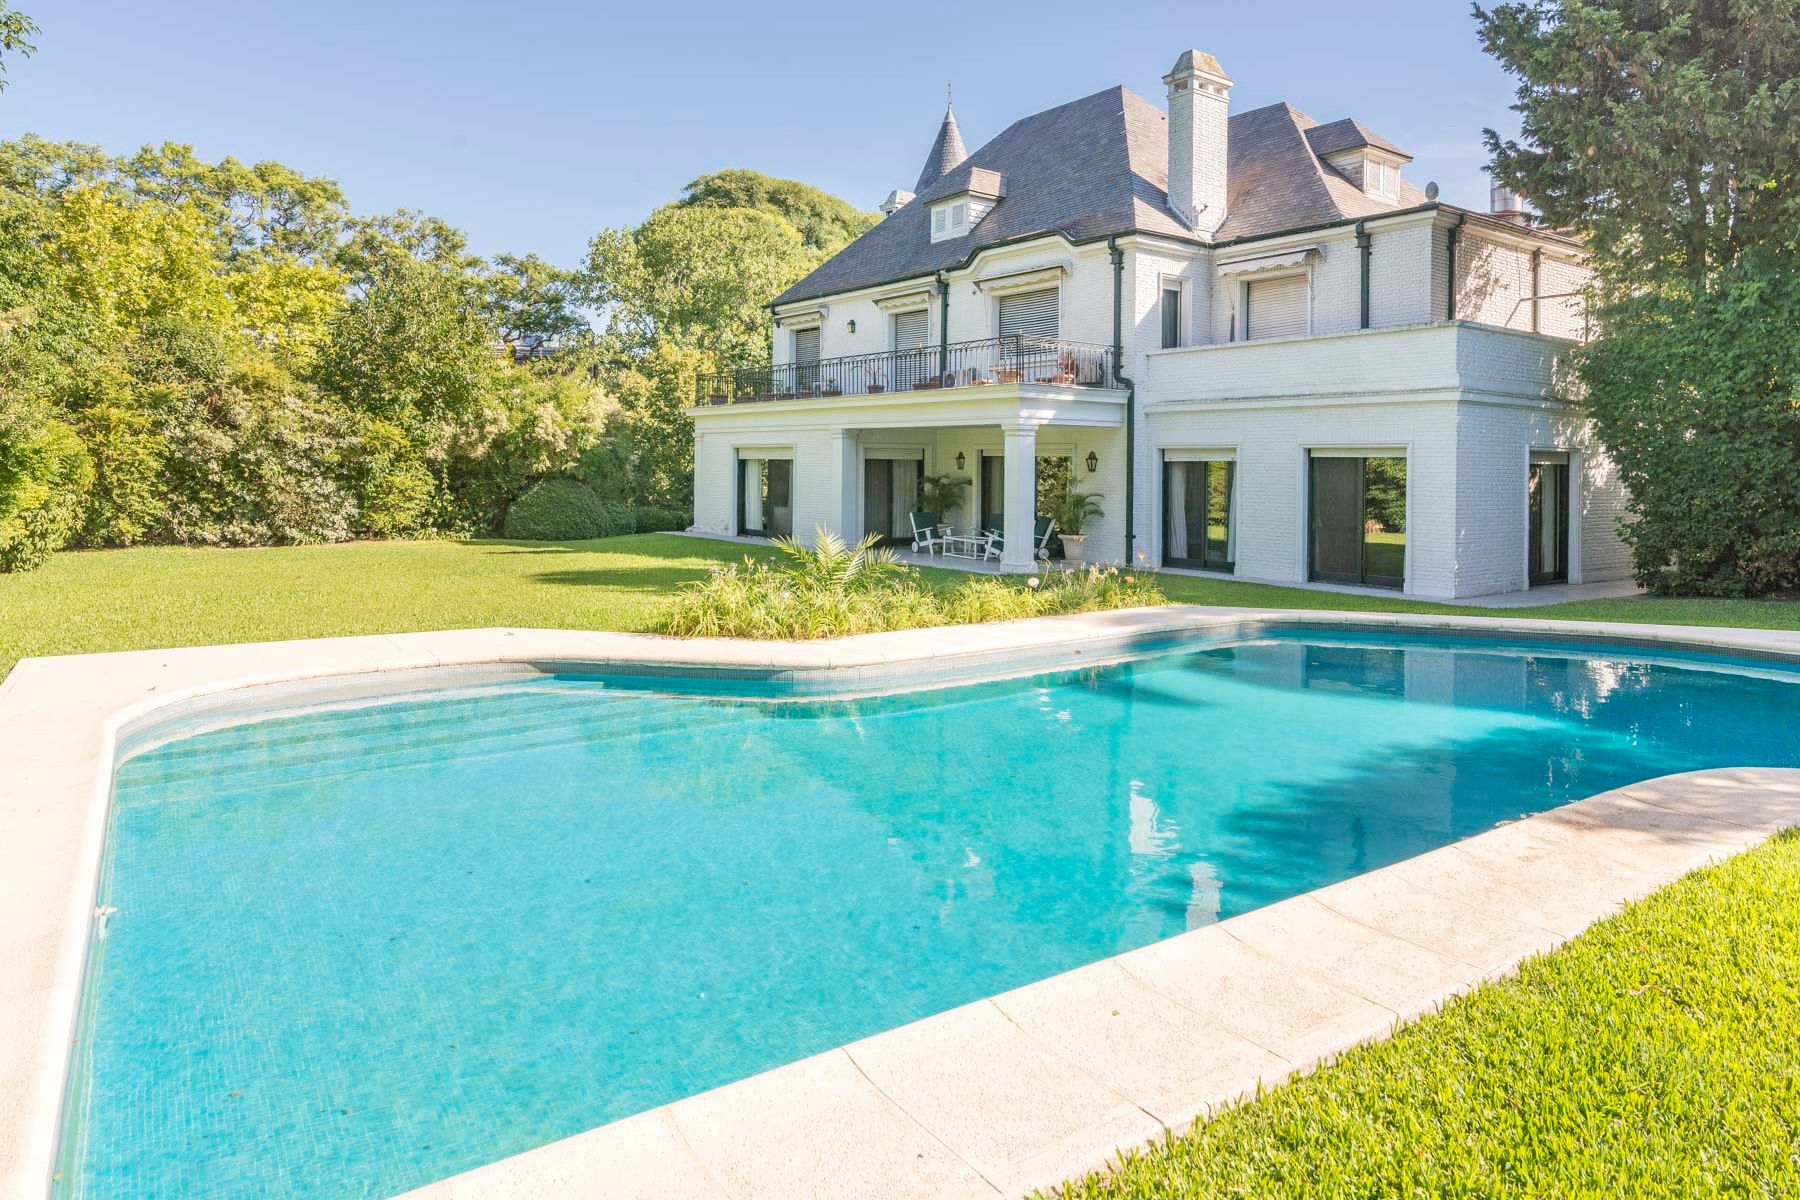 Single Family Home for Sale at Stunning French Style Residence ideal for diplomatic use Melo 1000 Vicente Lopez, Buenos Aires B1638 Argentina